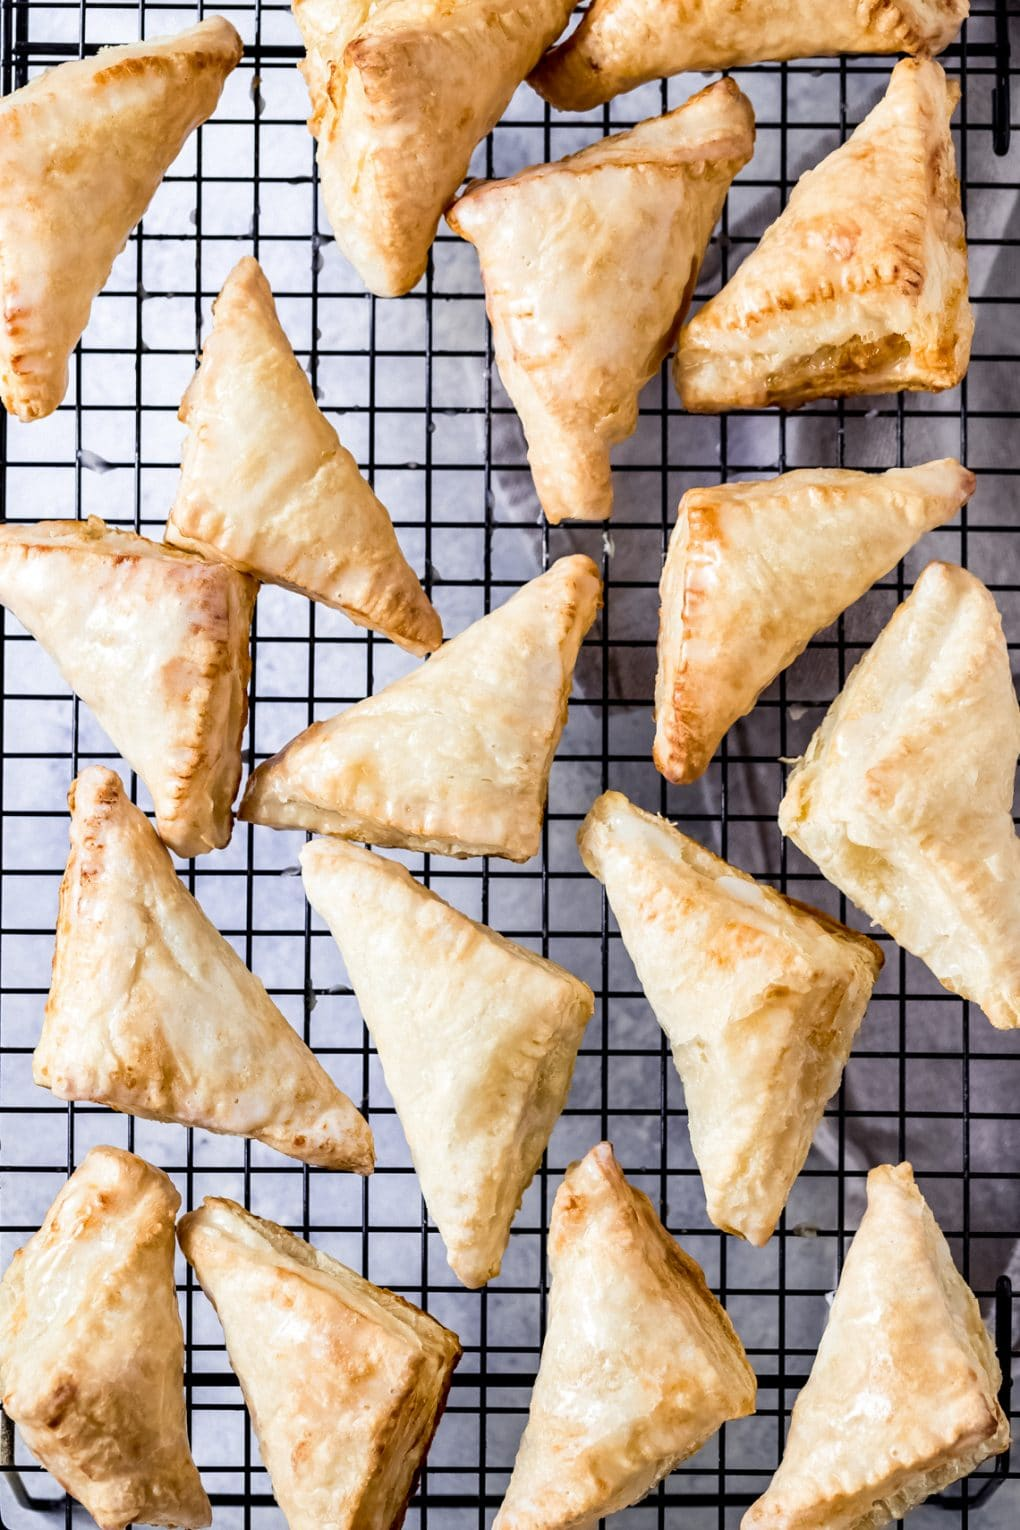 several air fryer apple turnovers on a cooling rack